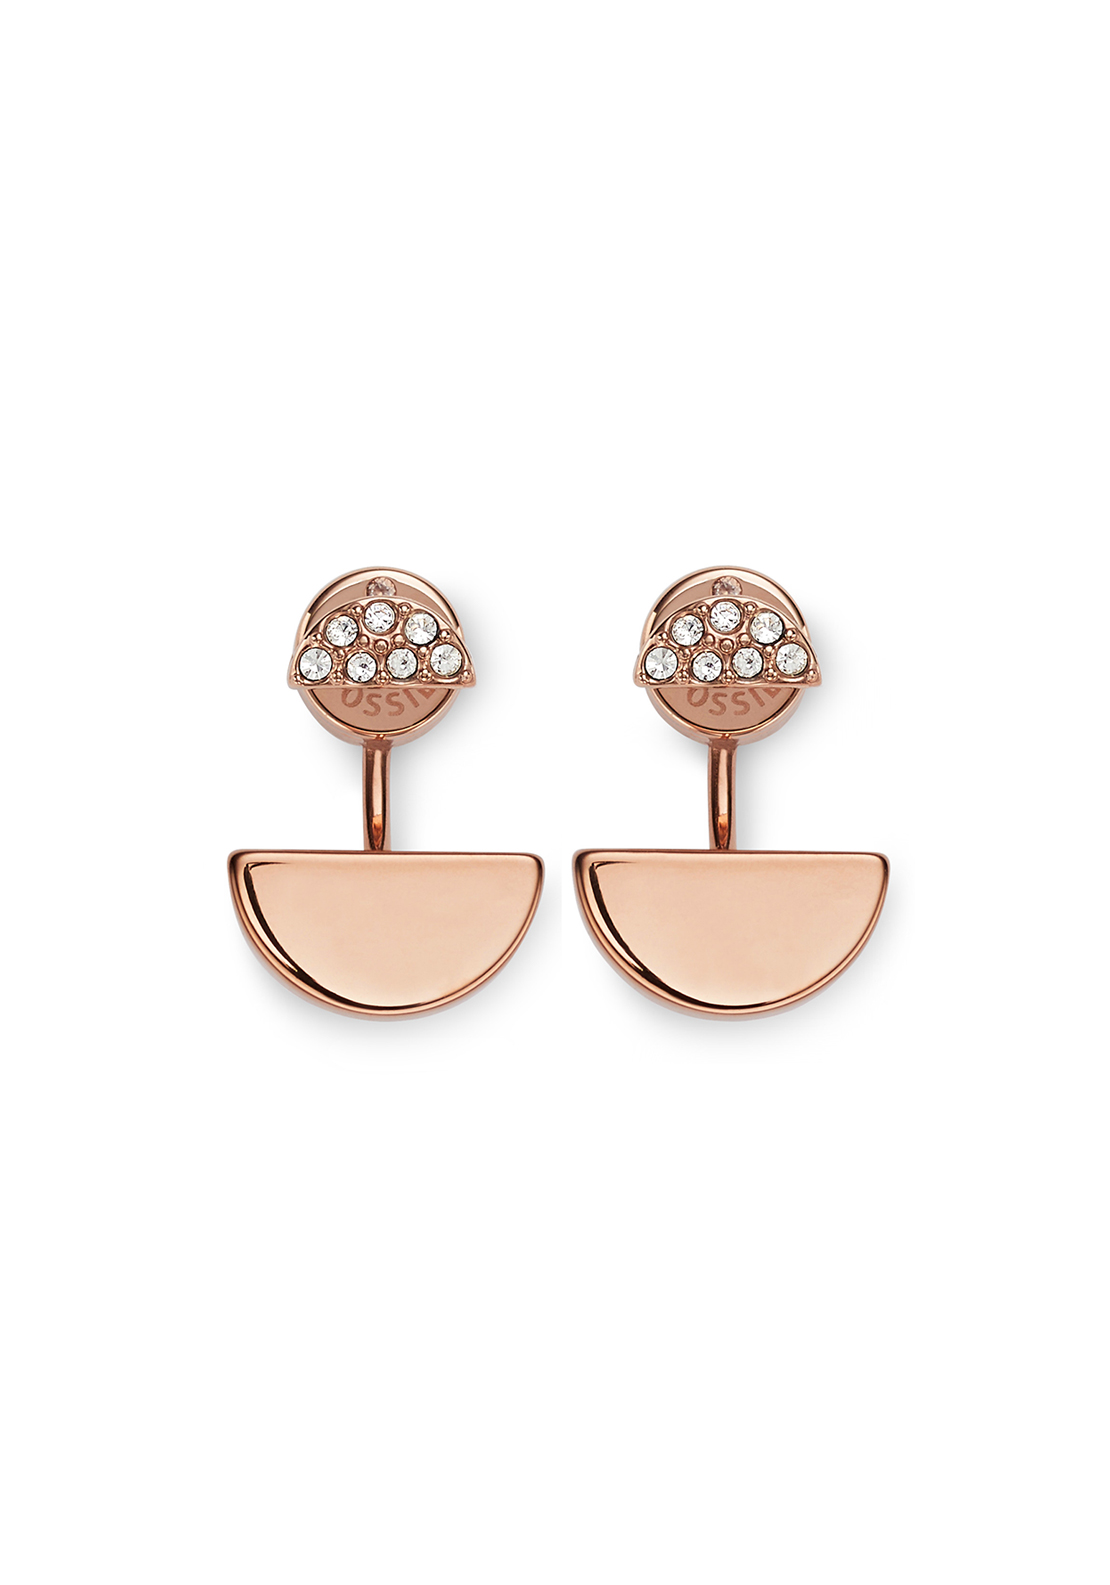 Fossil Stones Stud Earrings, Rose Gold